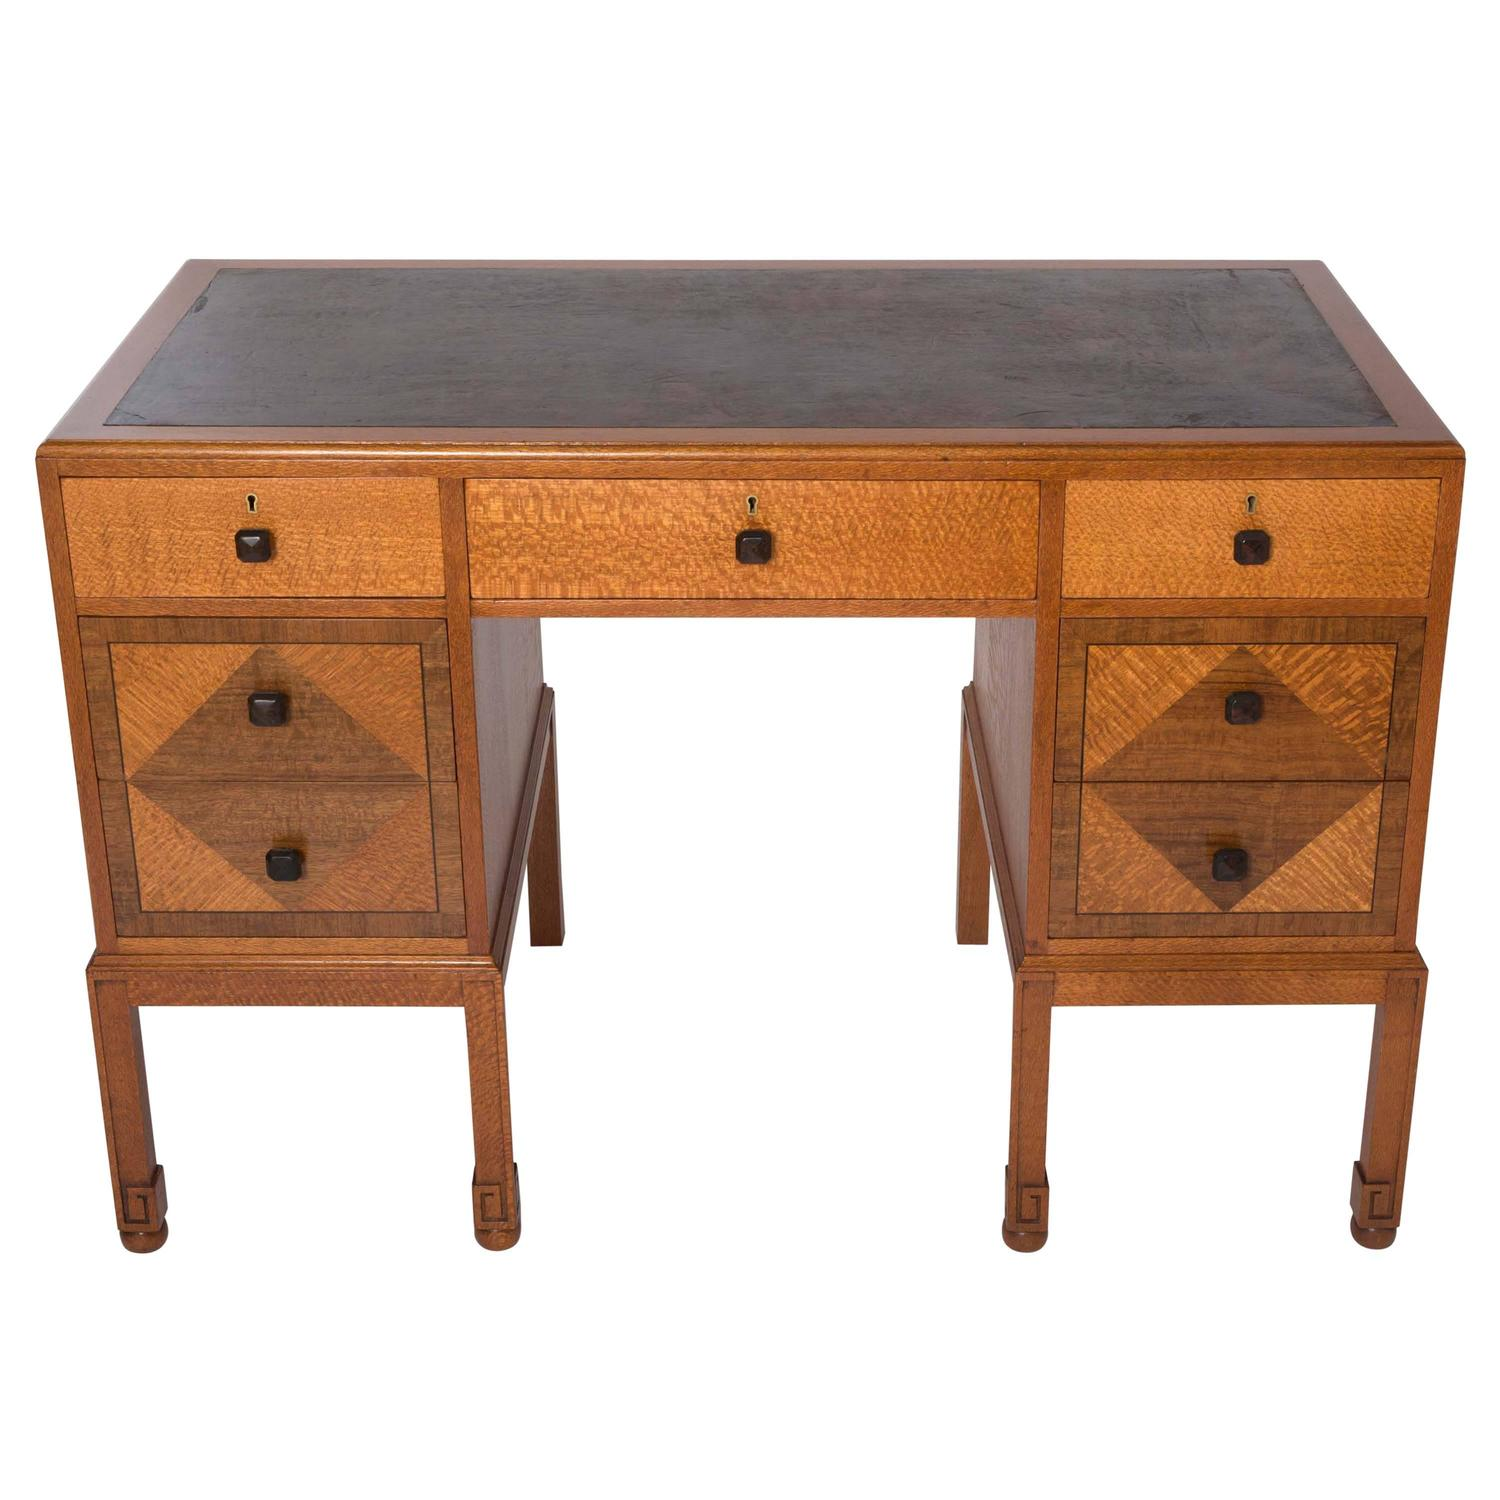 Rare Desk By Heals Of London For Sale At 1stdibs